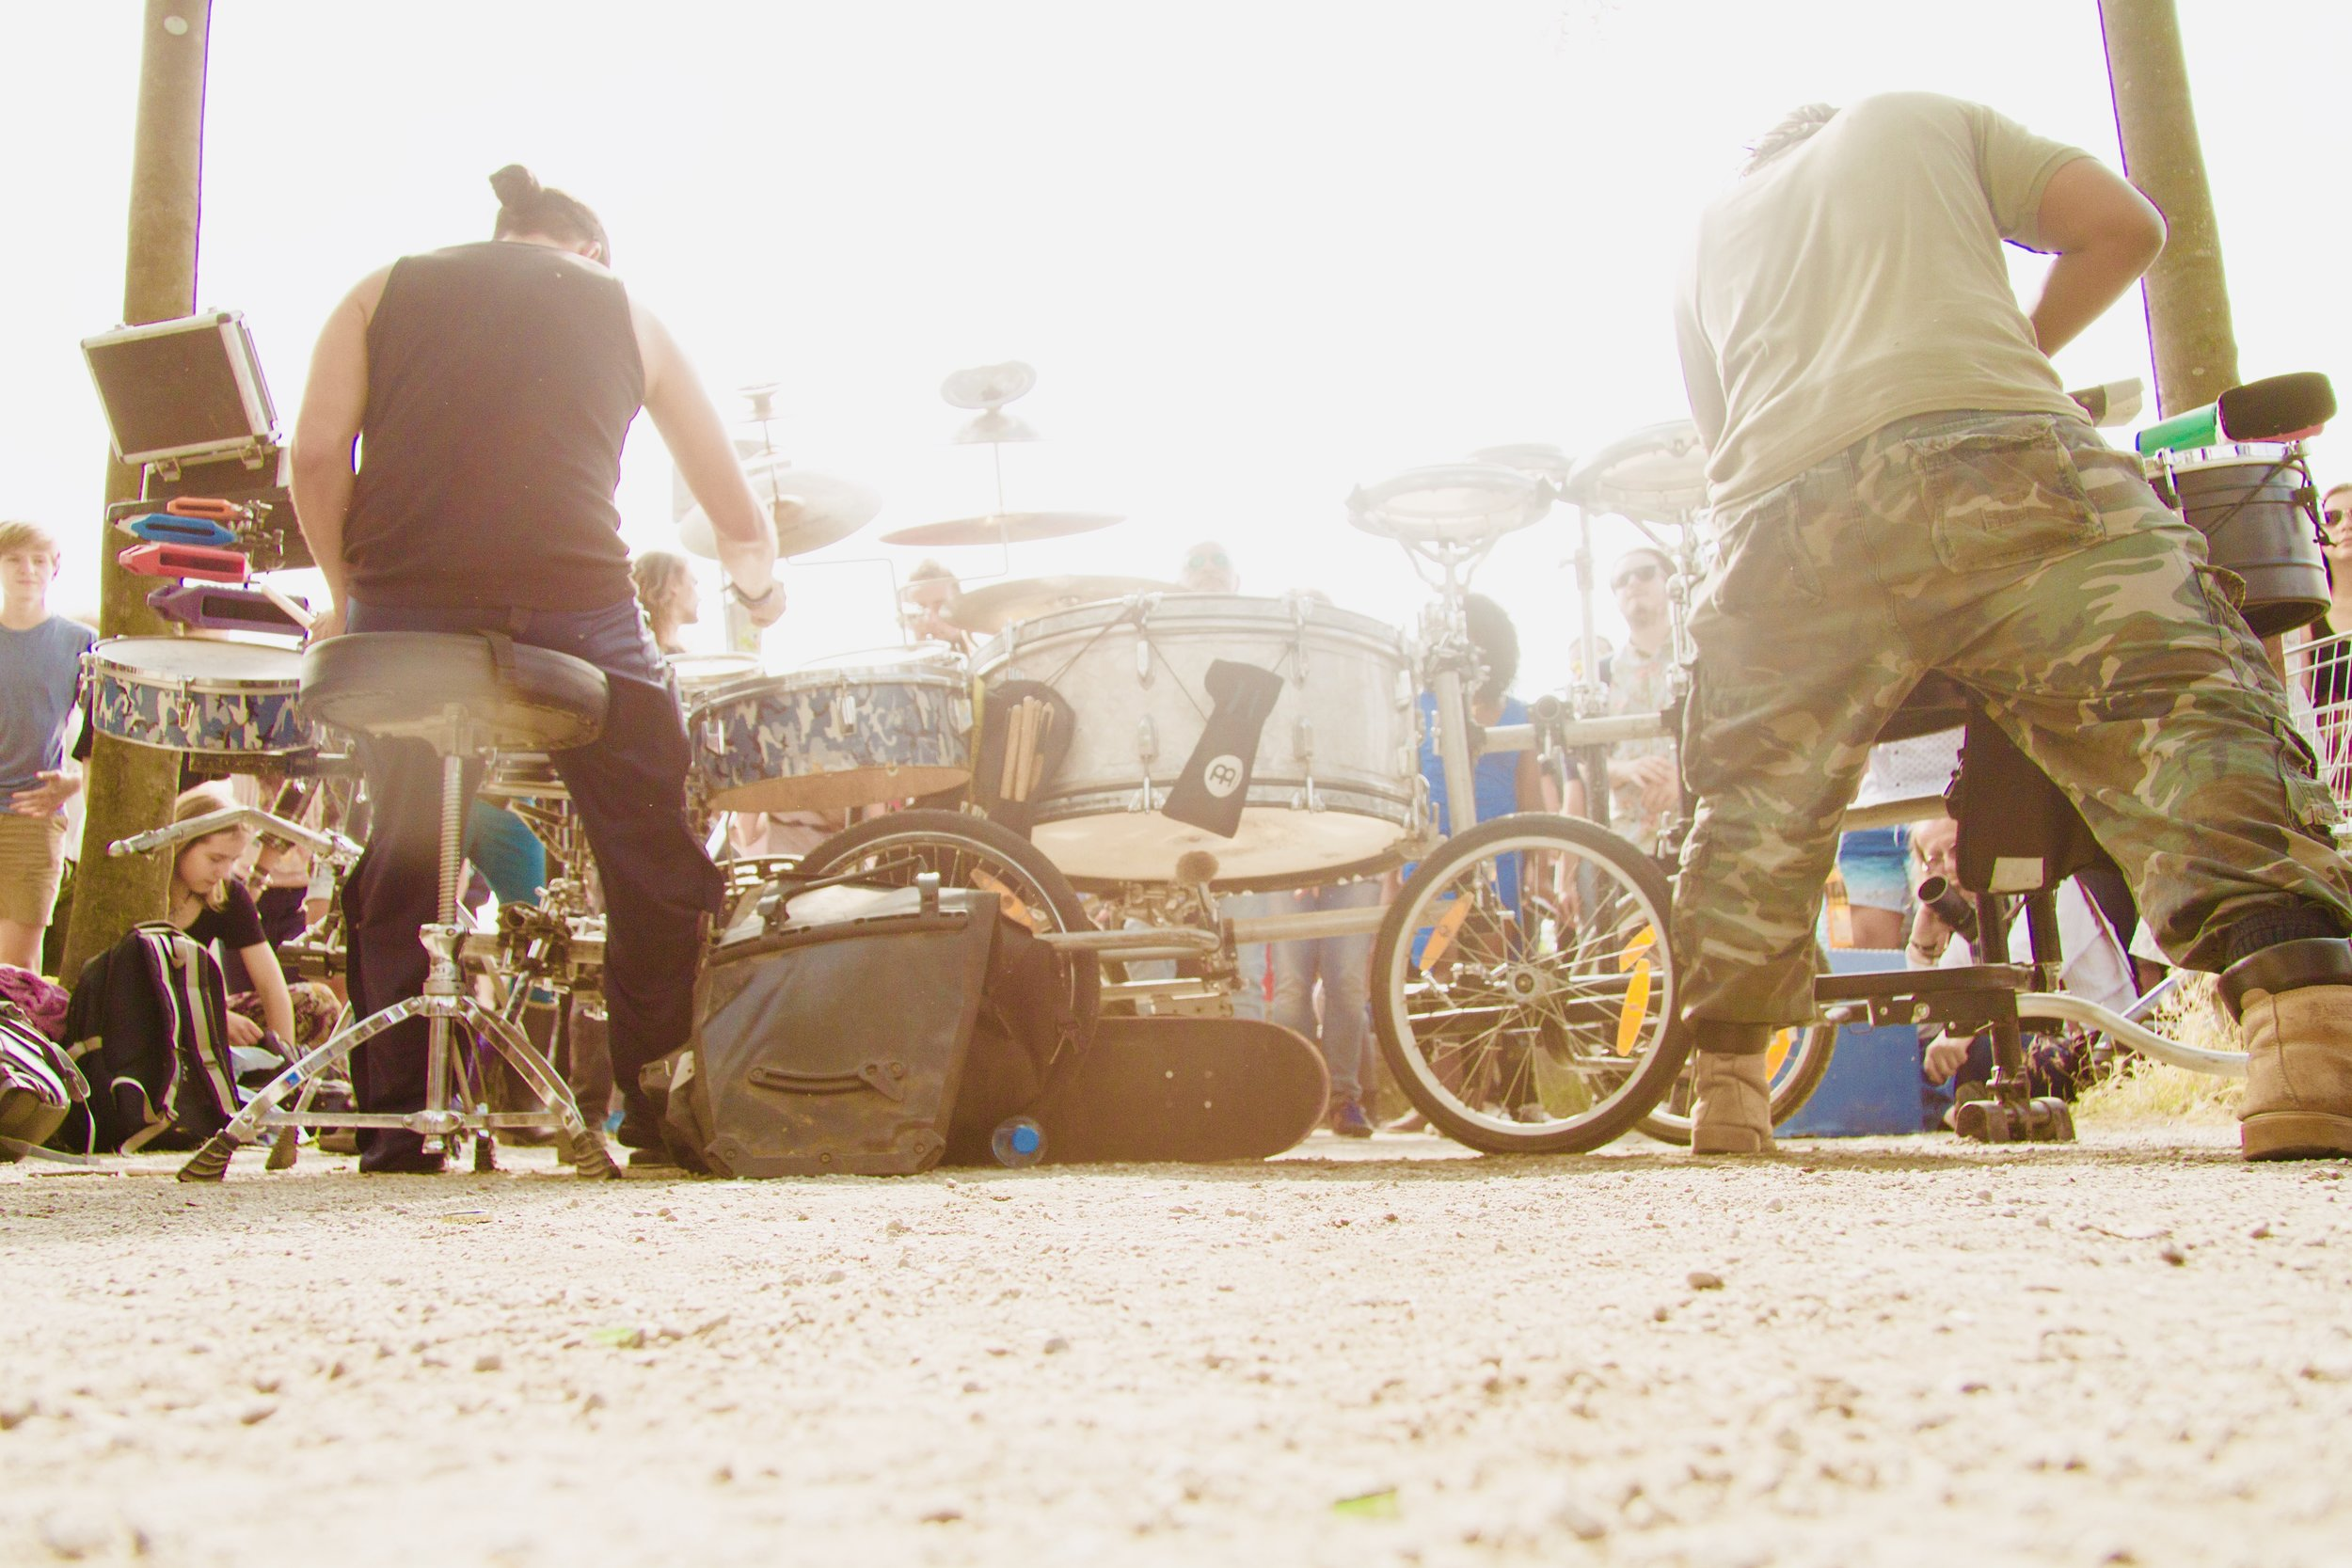 berlin-friends-musicians-strangers-and-burh-ling-things_27421327443_o.jpeg